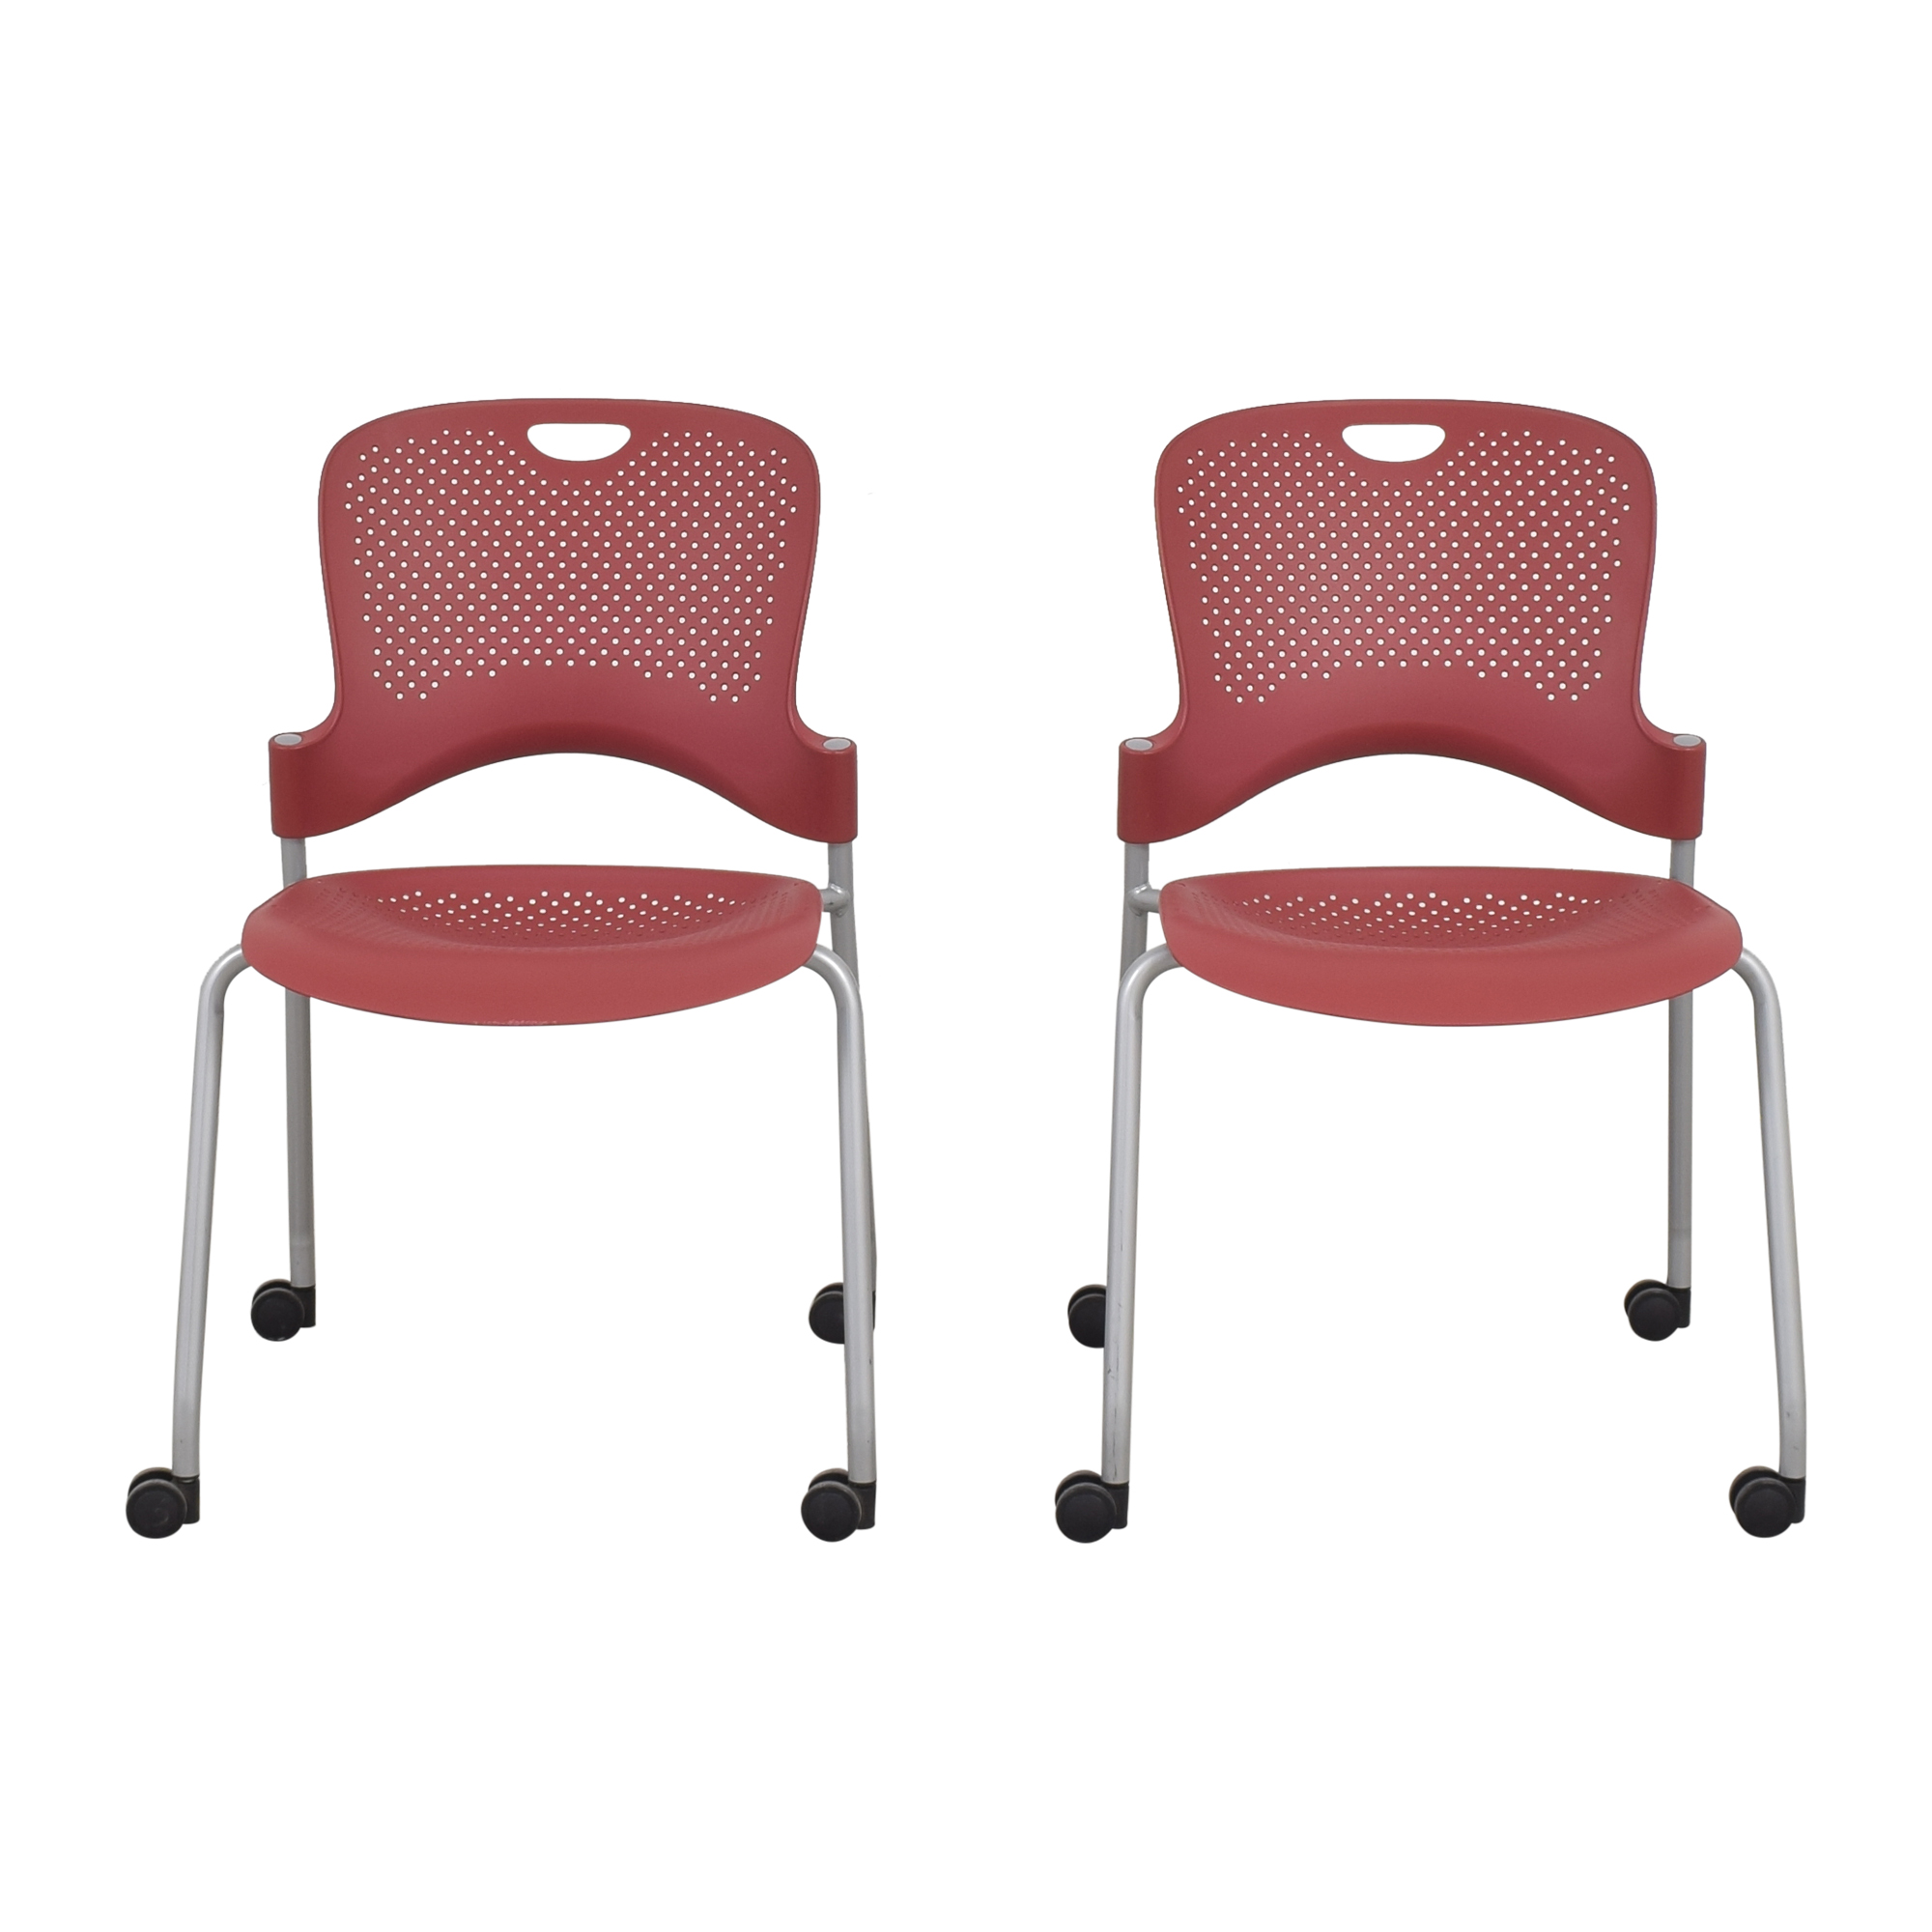 Herman Miller Herman Miller Caper Stacking Chairs ct